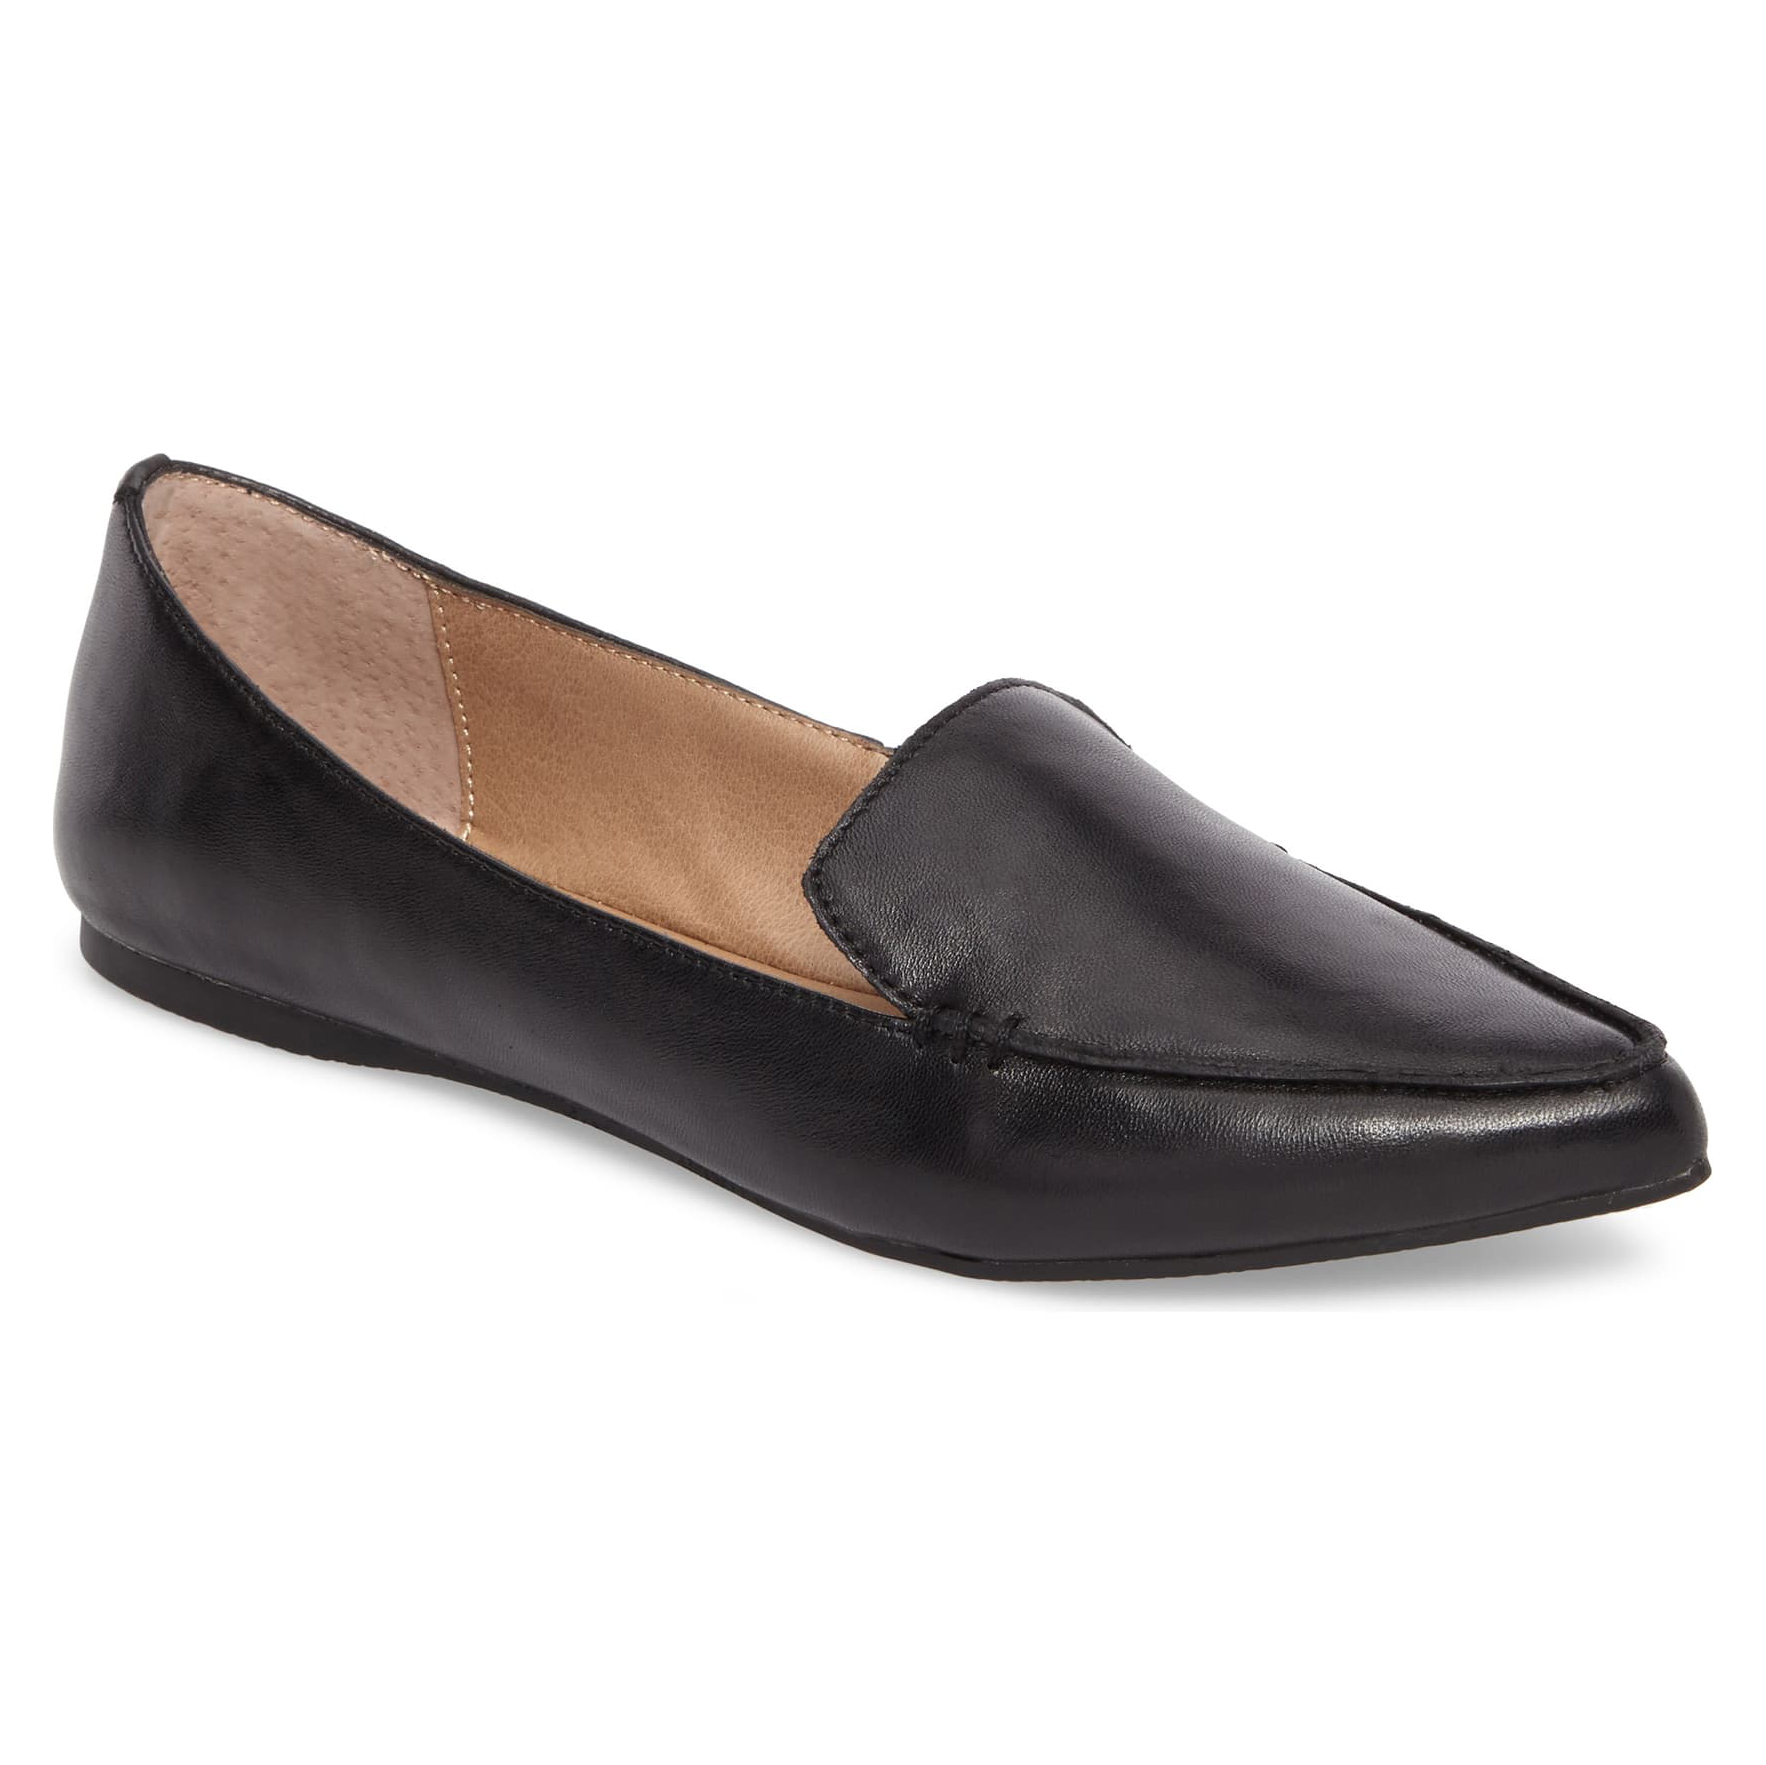 Steve Madden Feather Loafer Black Flat